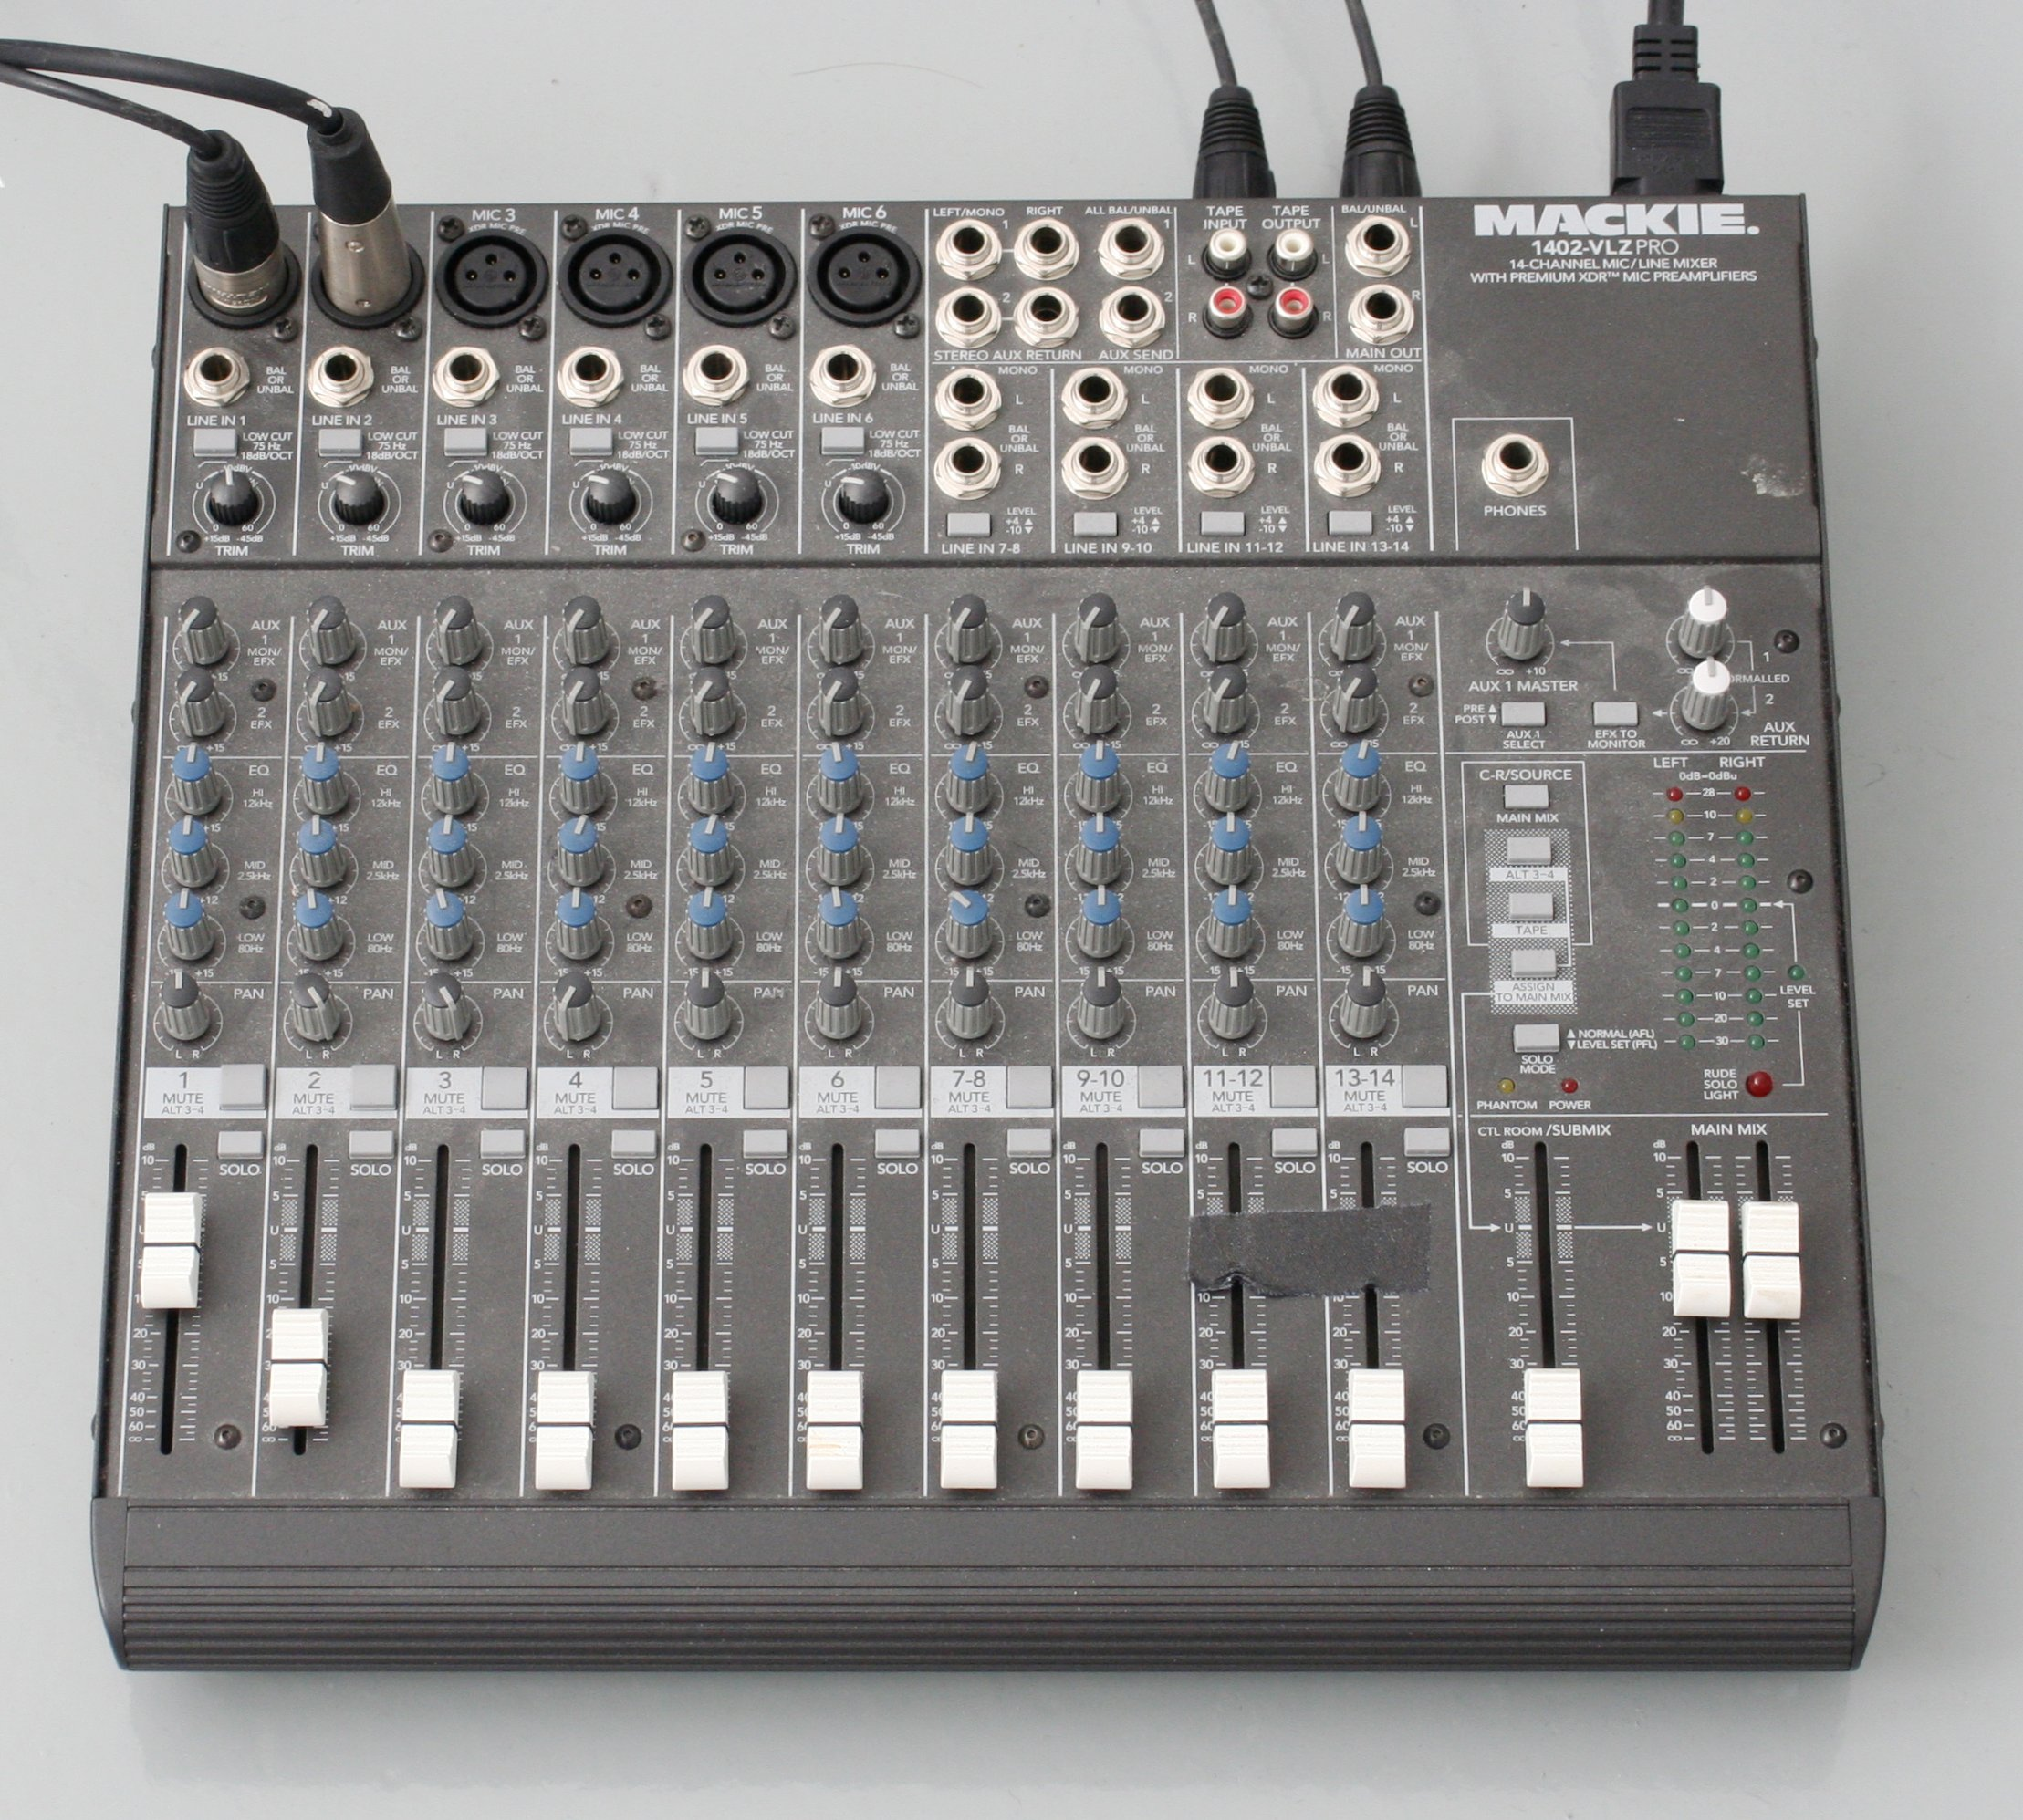 An Mackie 1402 with 12 sliders, two XLR jacks plugged in and two out, no USB